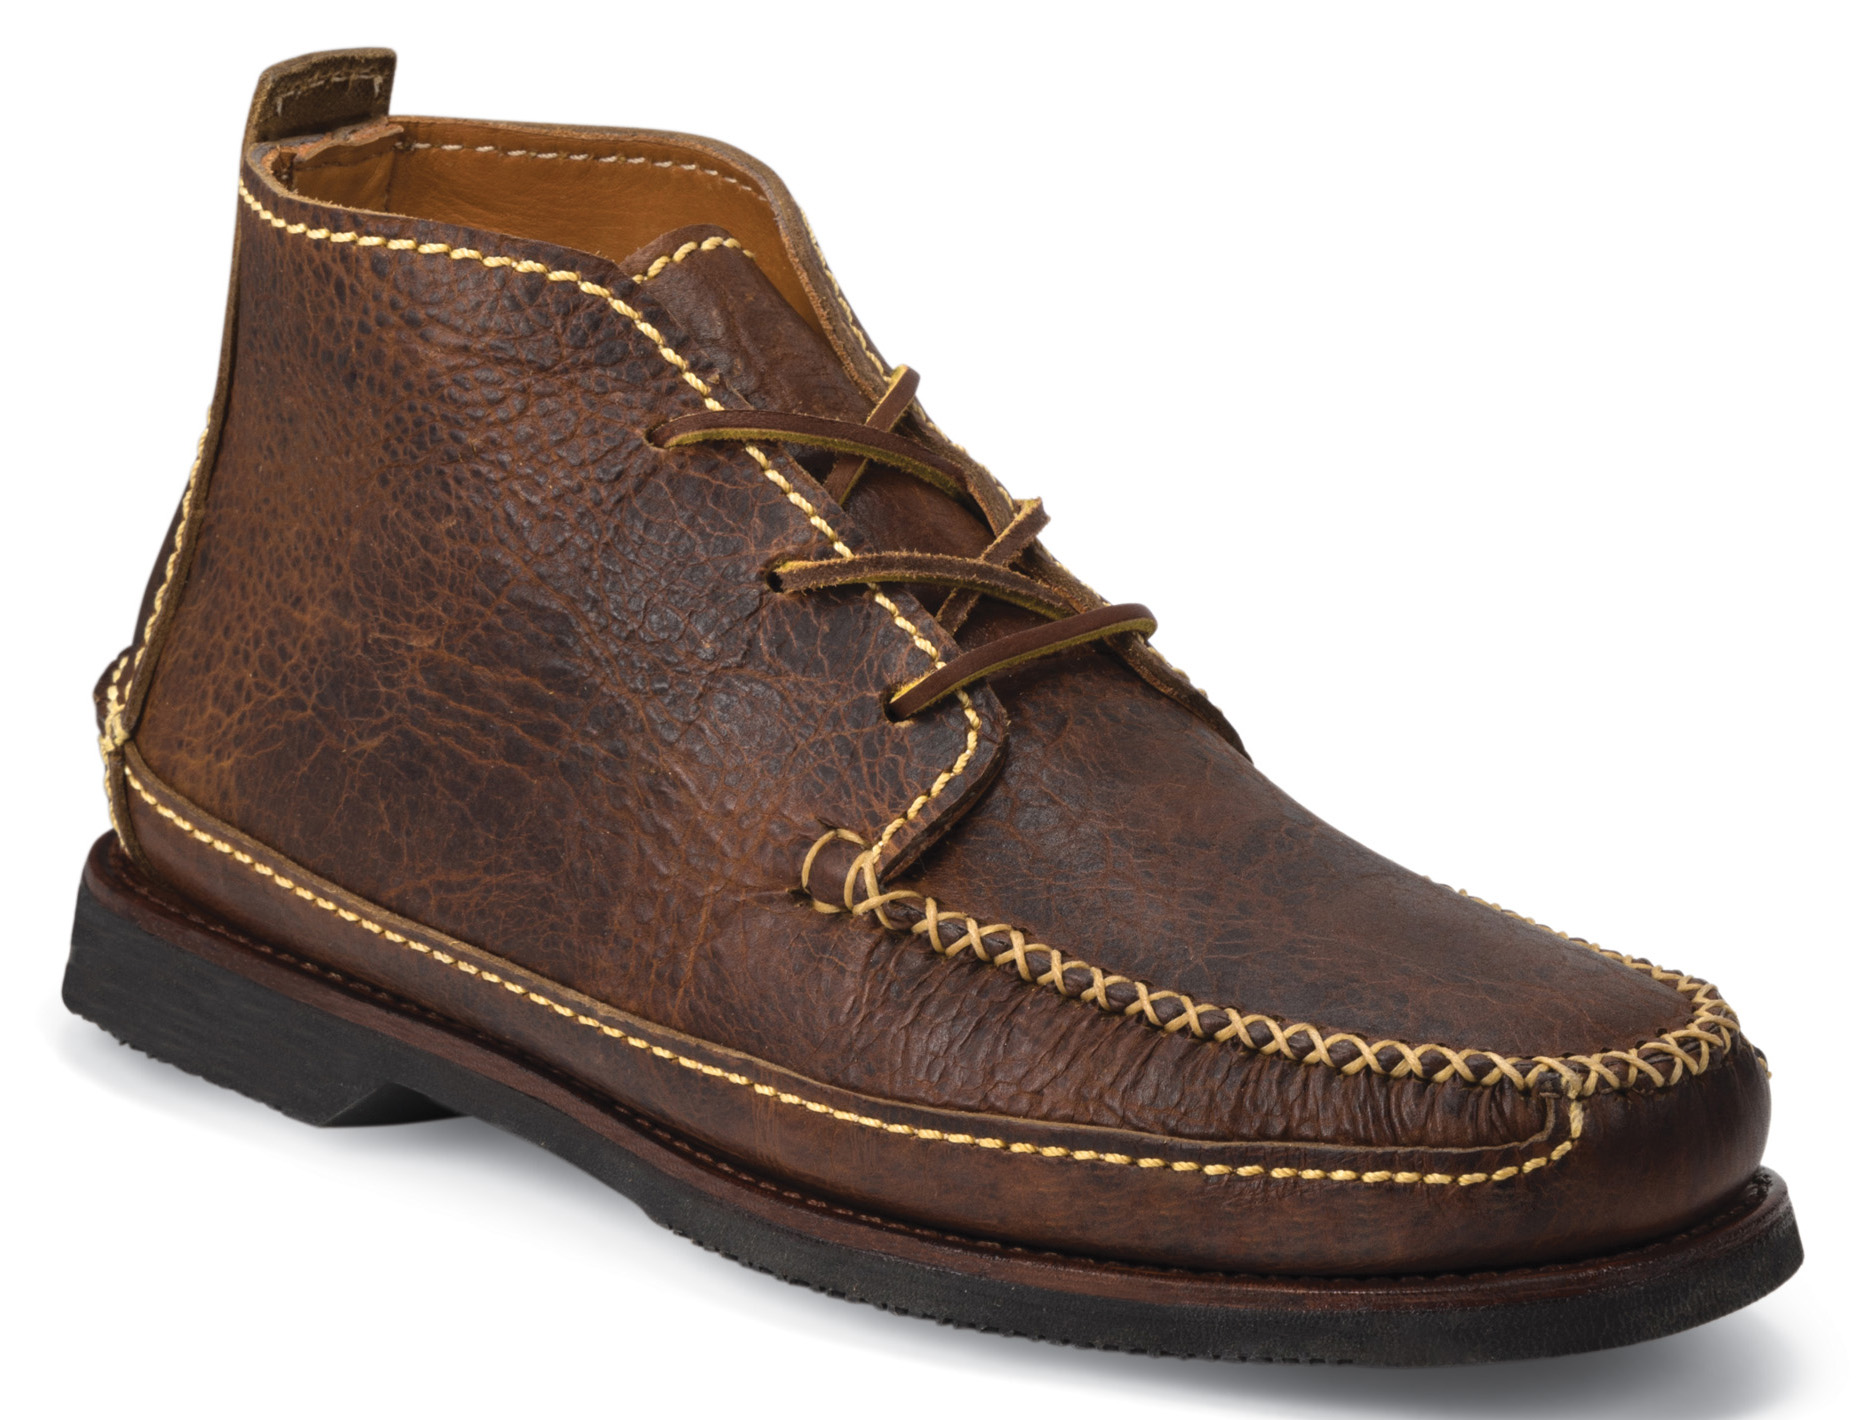 chippewa s rugged casual bison chukka boots country